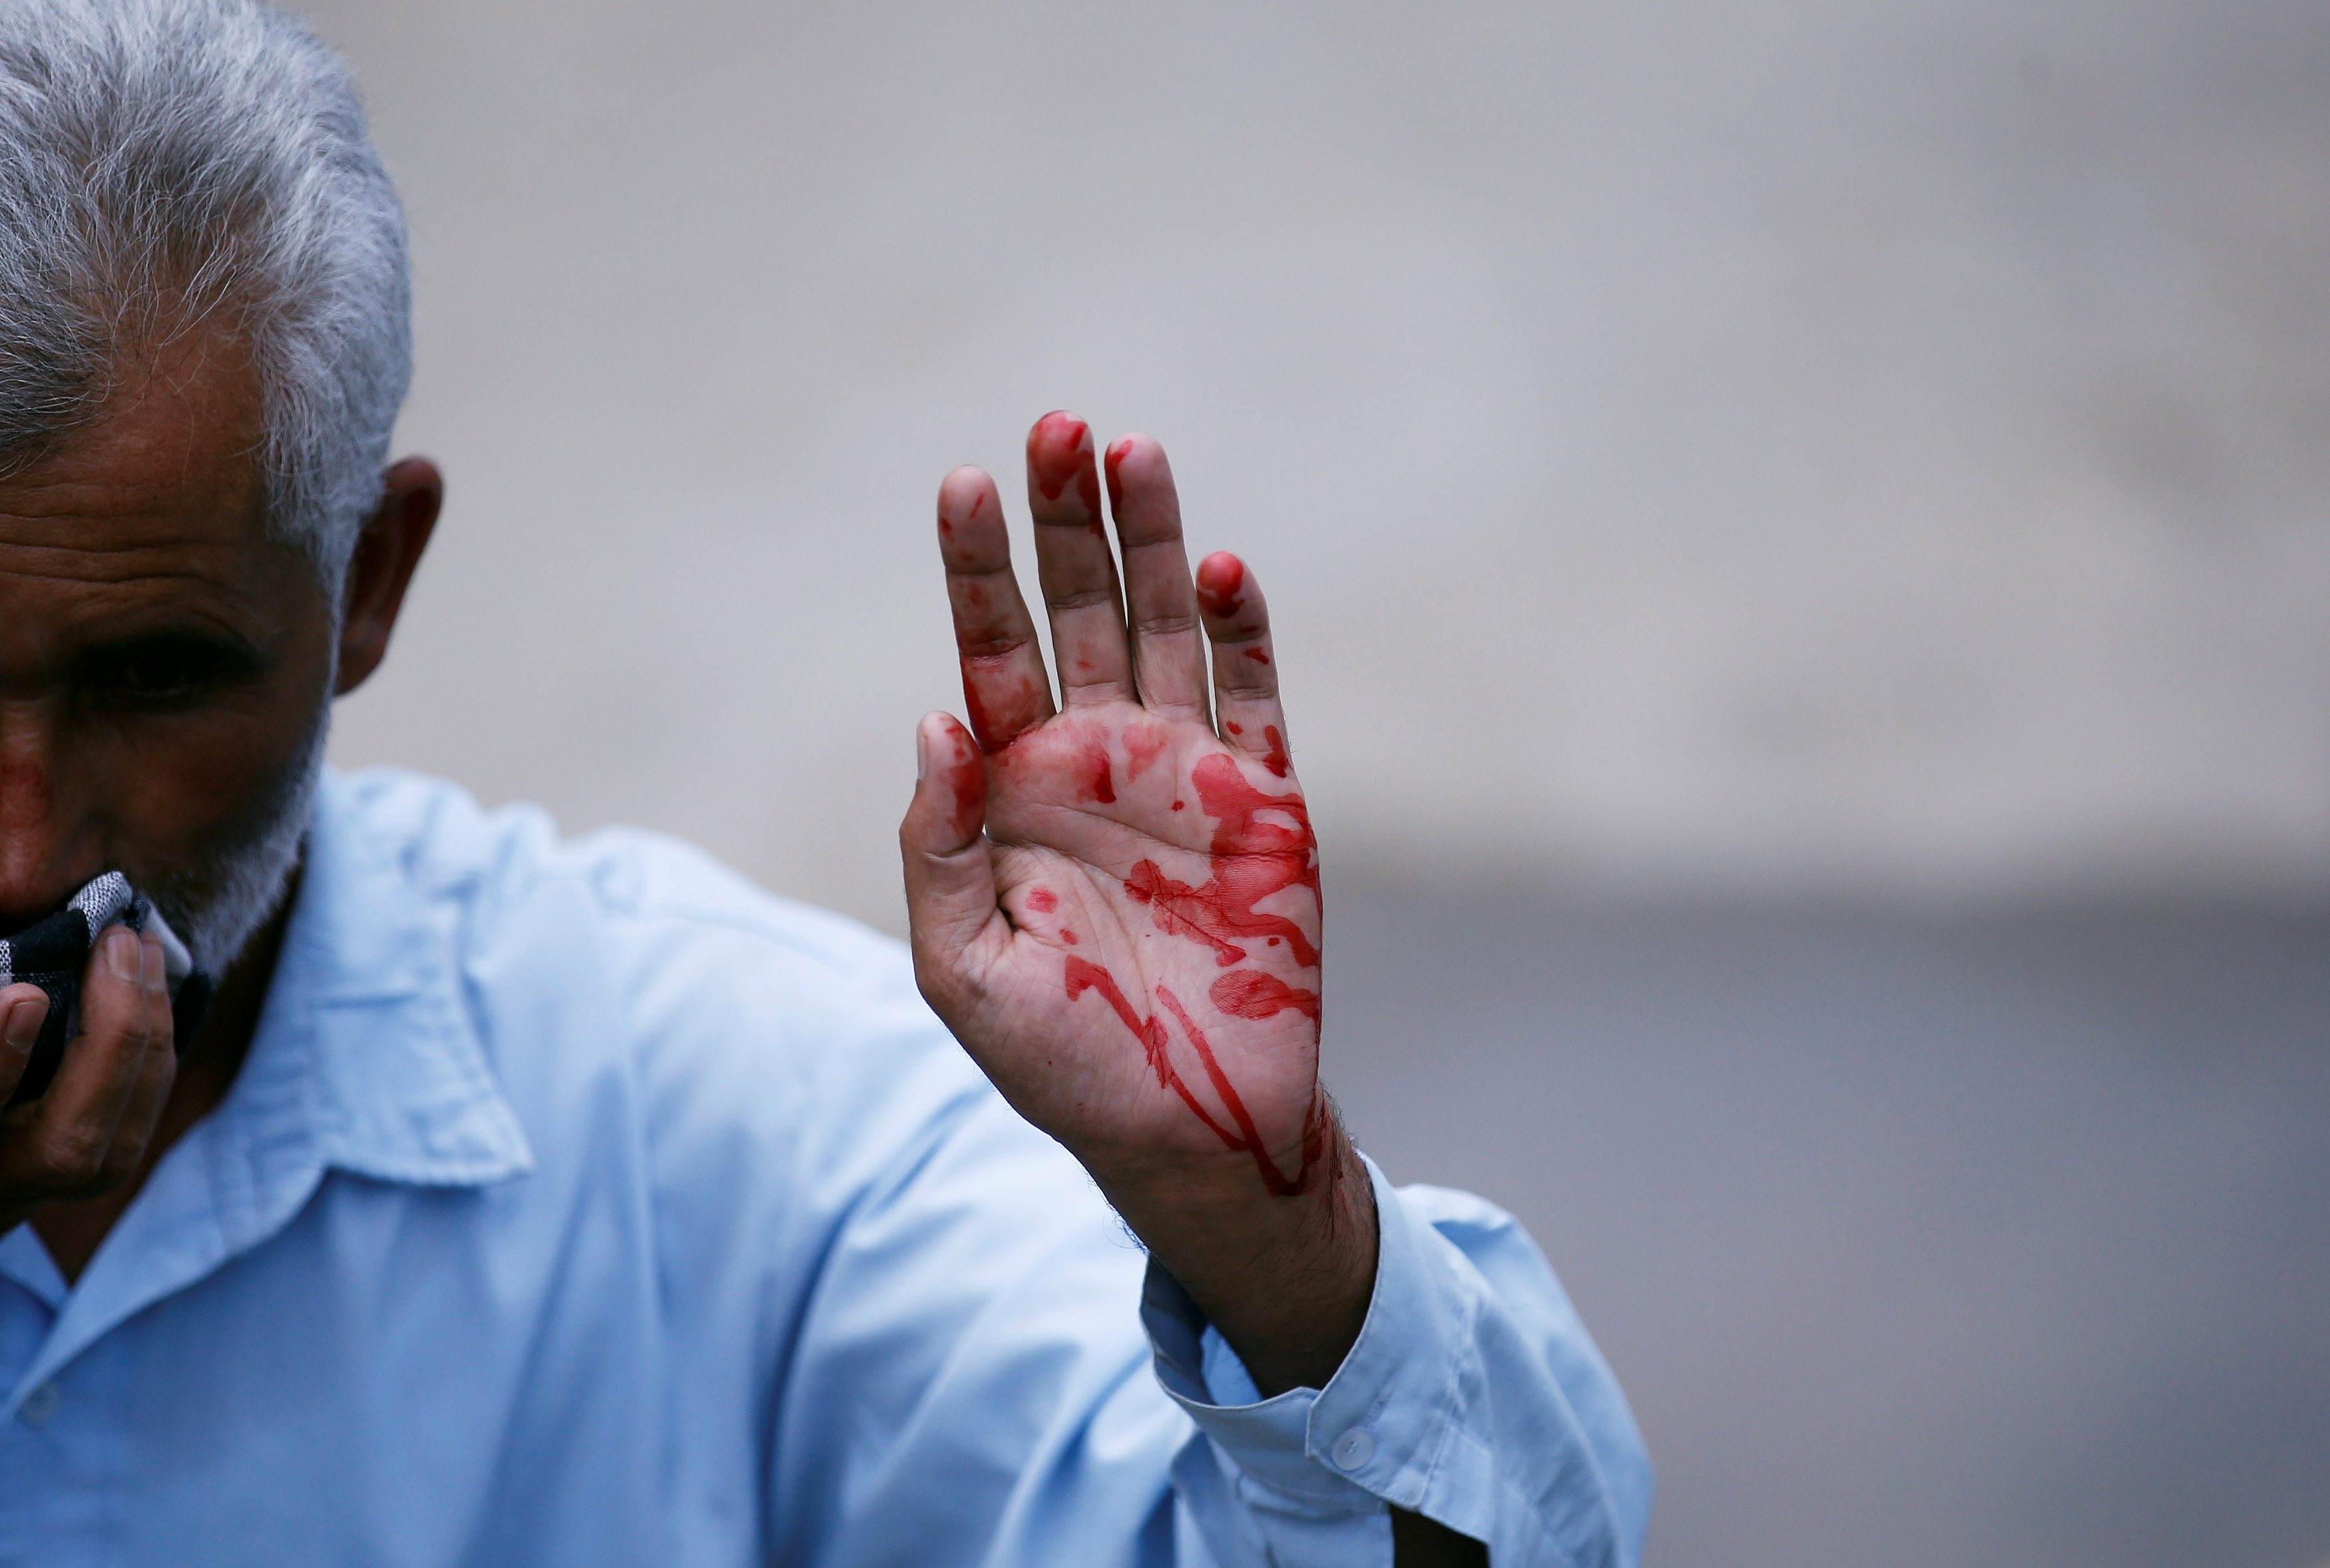 A supporter of Kashmiri lawmaker Sheikh Abdul Rashid, also known as Engineer Rashid, shows his hand after he got injured during a scuffle with Indian police during a protest in Srinagar, against the recent killings in Kashmir, India August 4, 2016. REUTERS//Danish Ismail